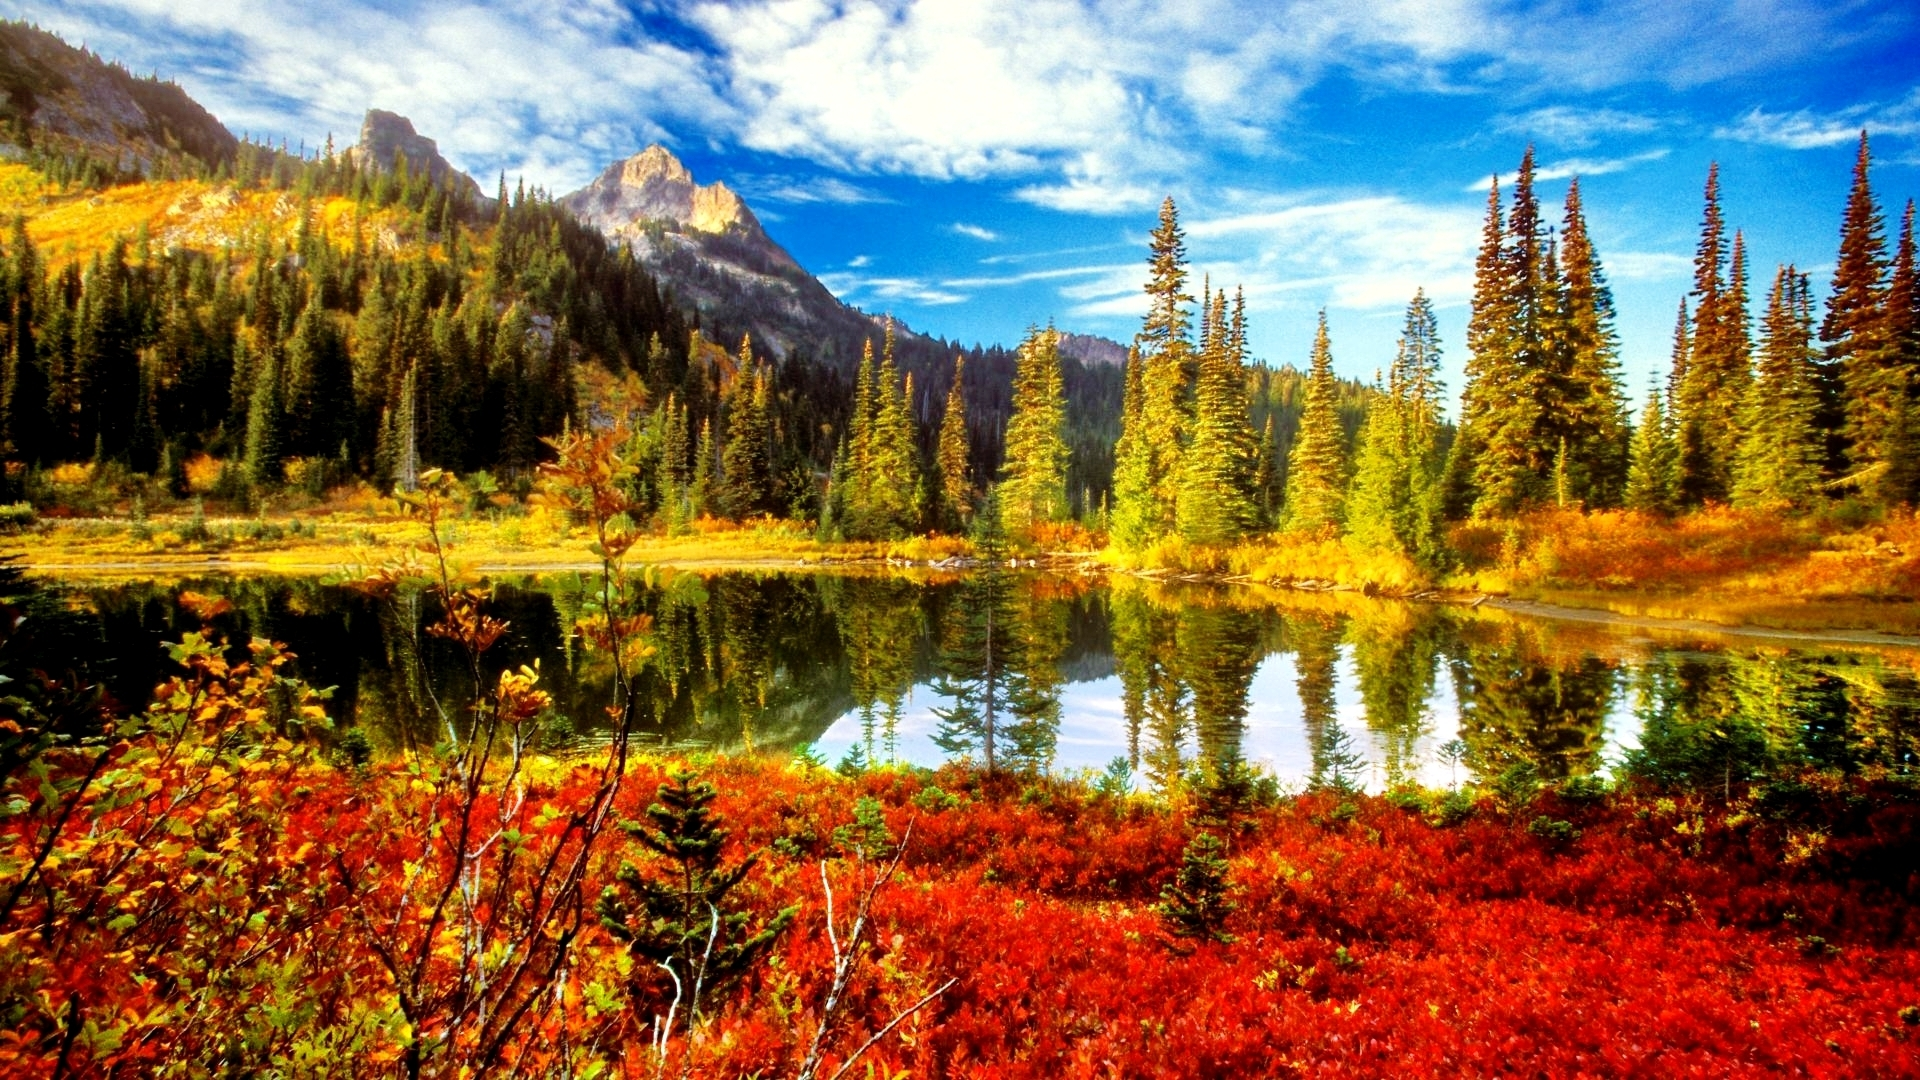 hd fall scenery wallpapers | pixelstalk